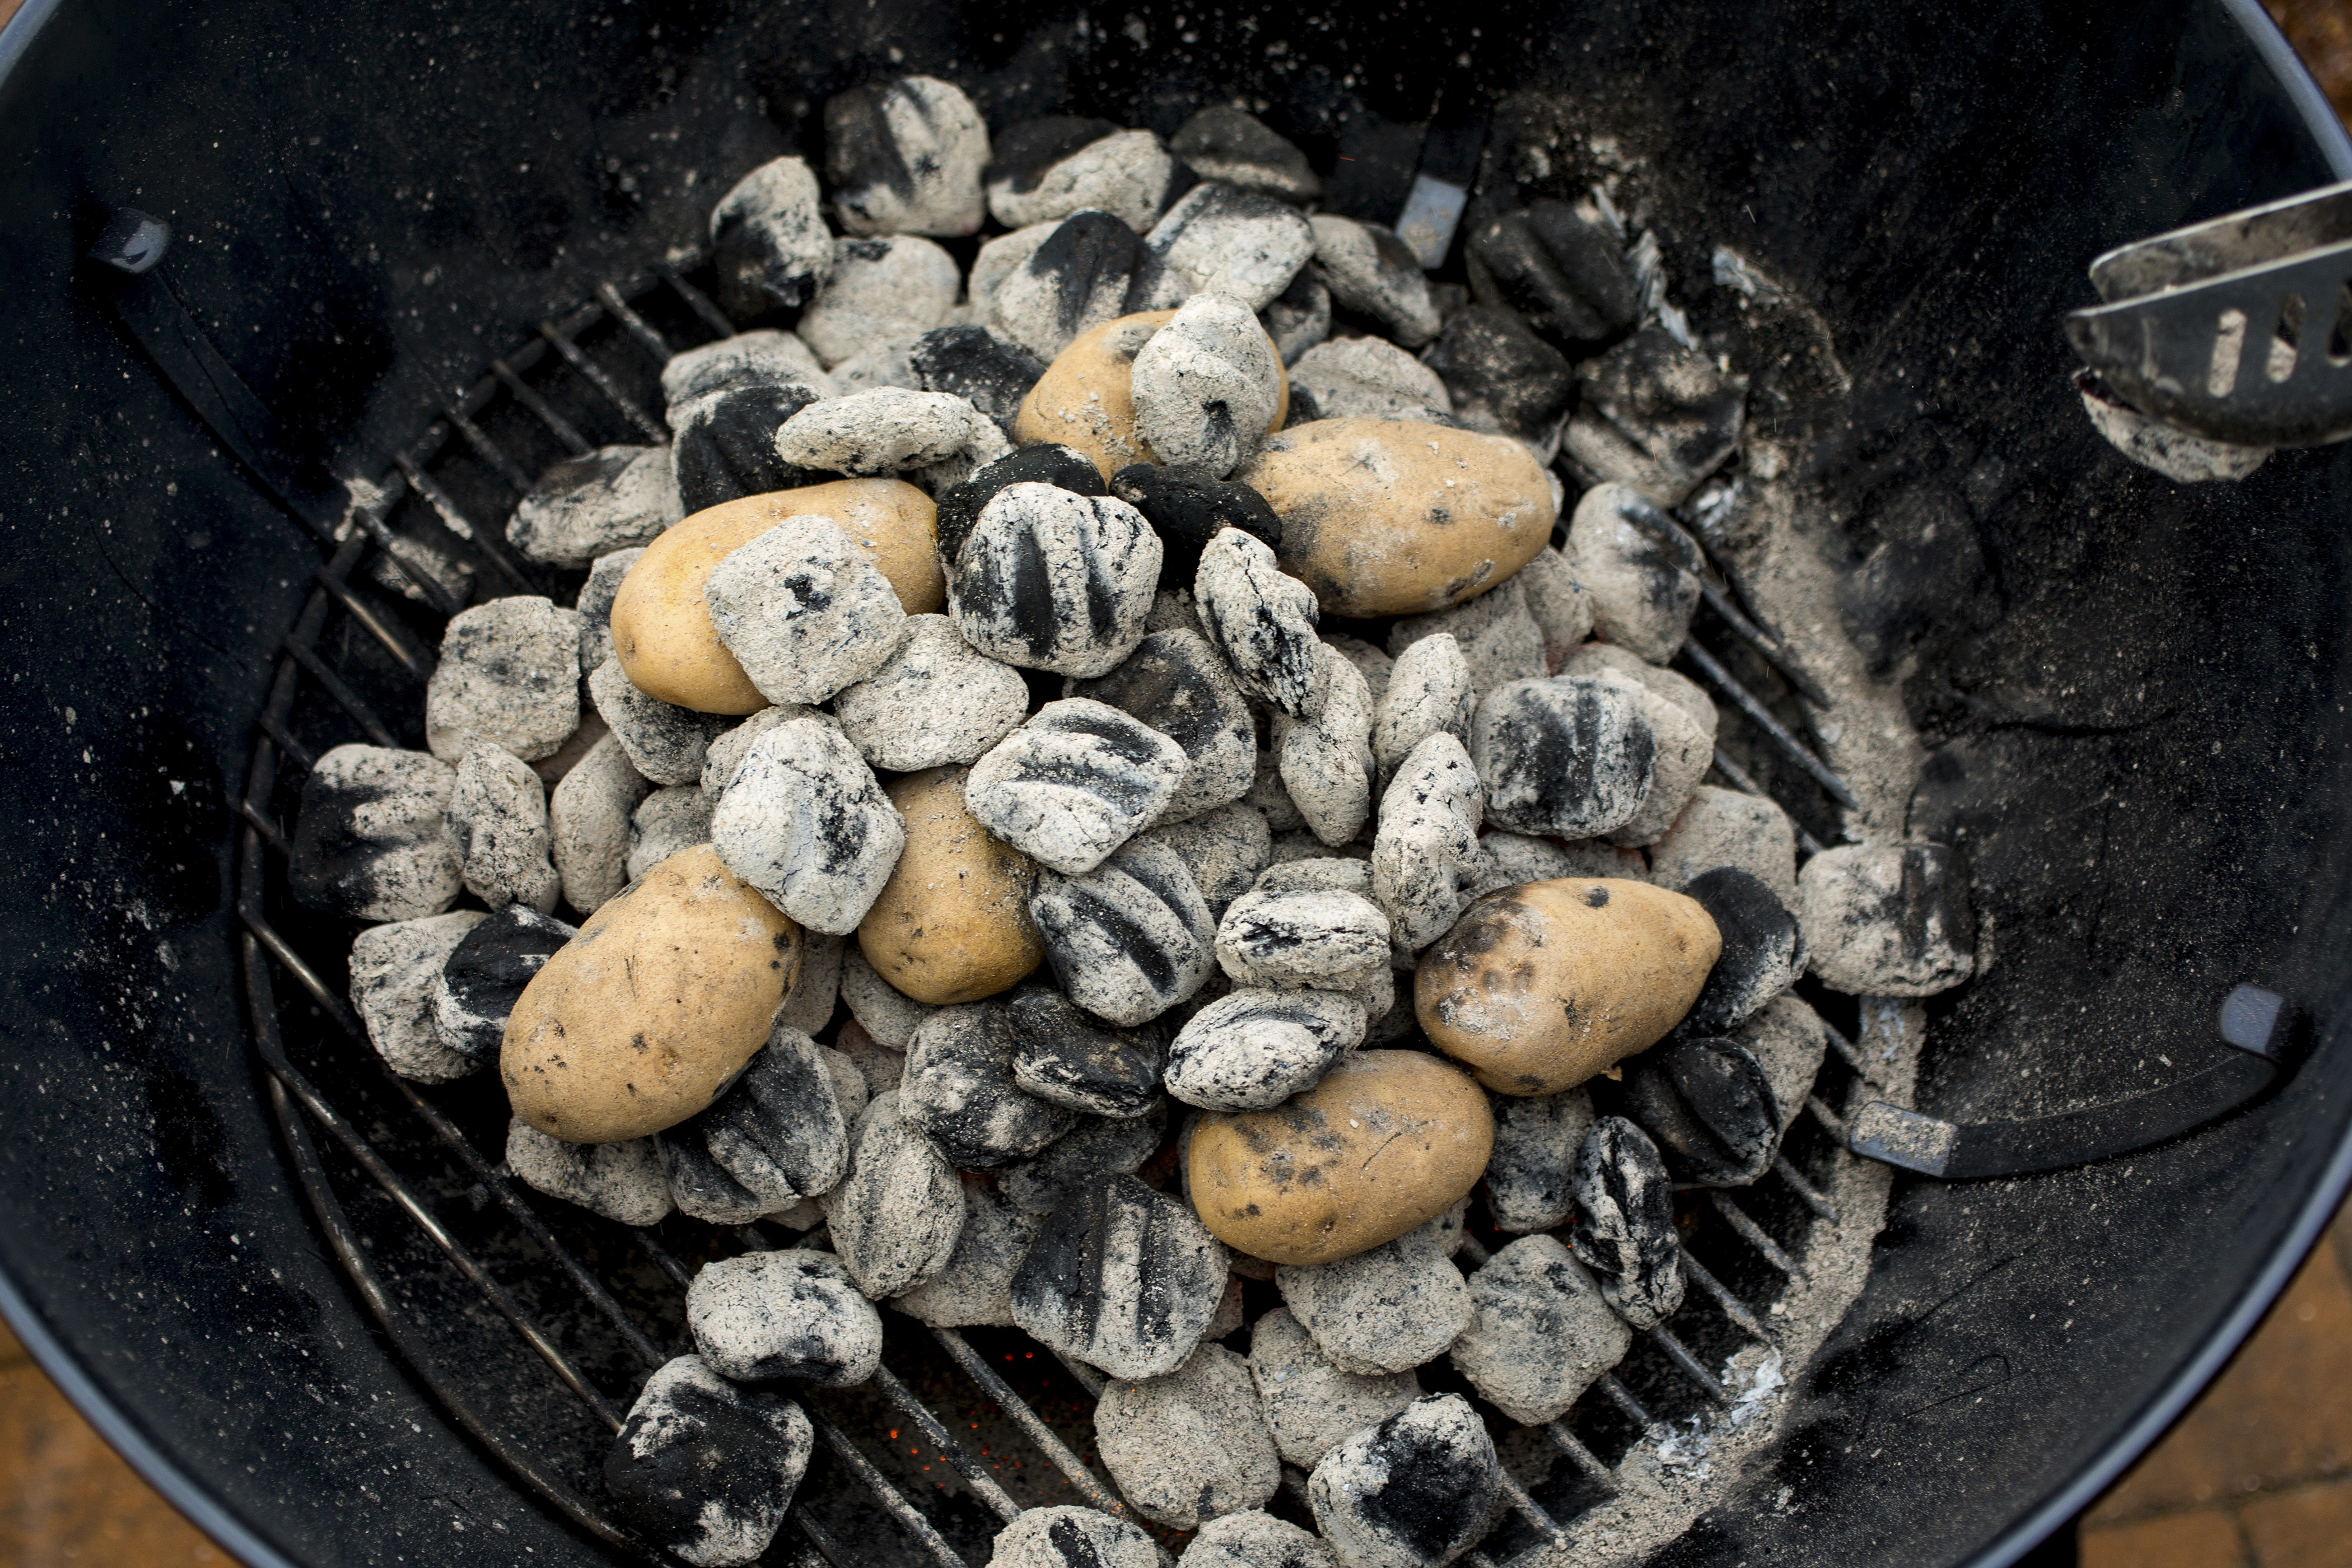 Fire-roasted potatoes are placed directly on hot coals, with some of the charcoal then placed right on top of the tubers. Roasting potatoes in the ashes is a long-standing practice that became prevalent in New York during the Depression.